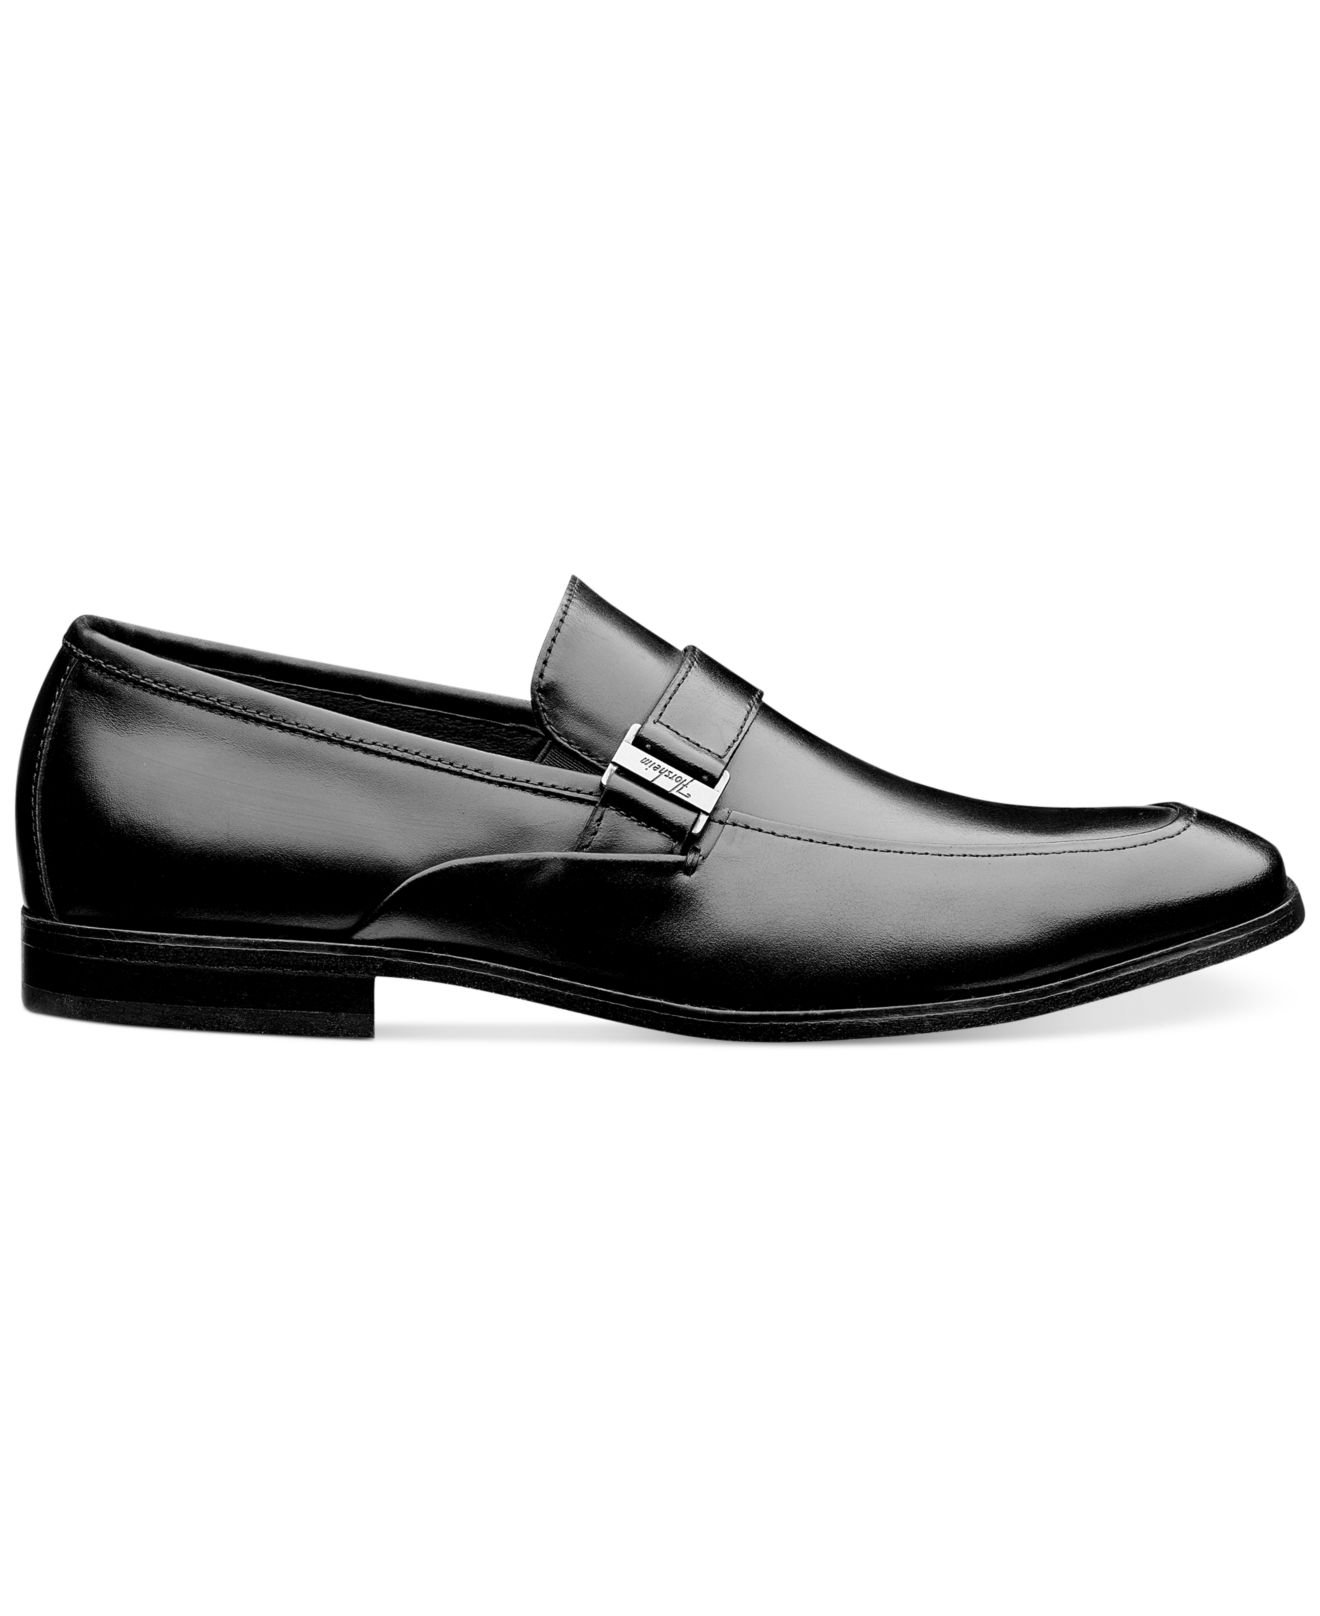 Kenneth Cole Loafers For Men Images Reaction